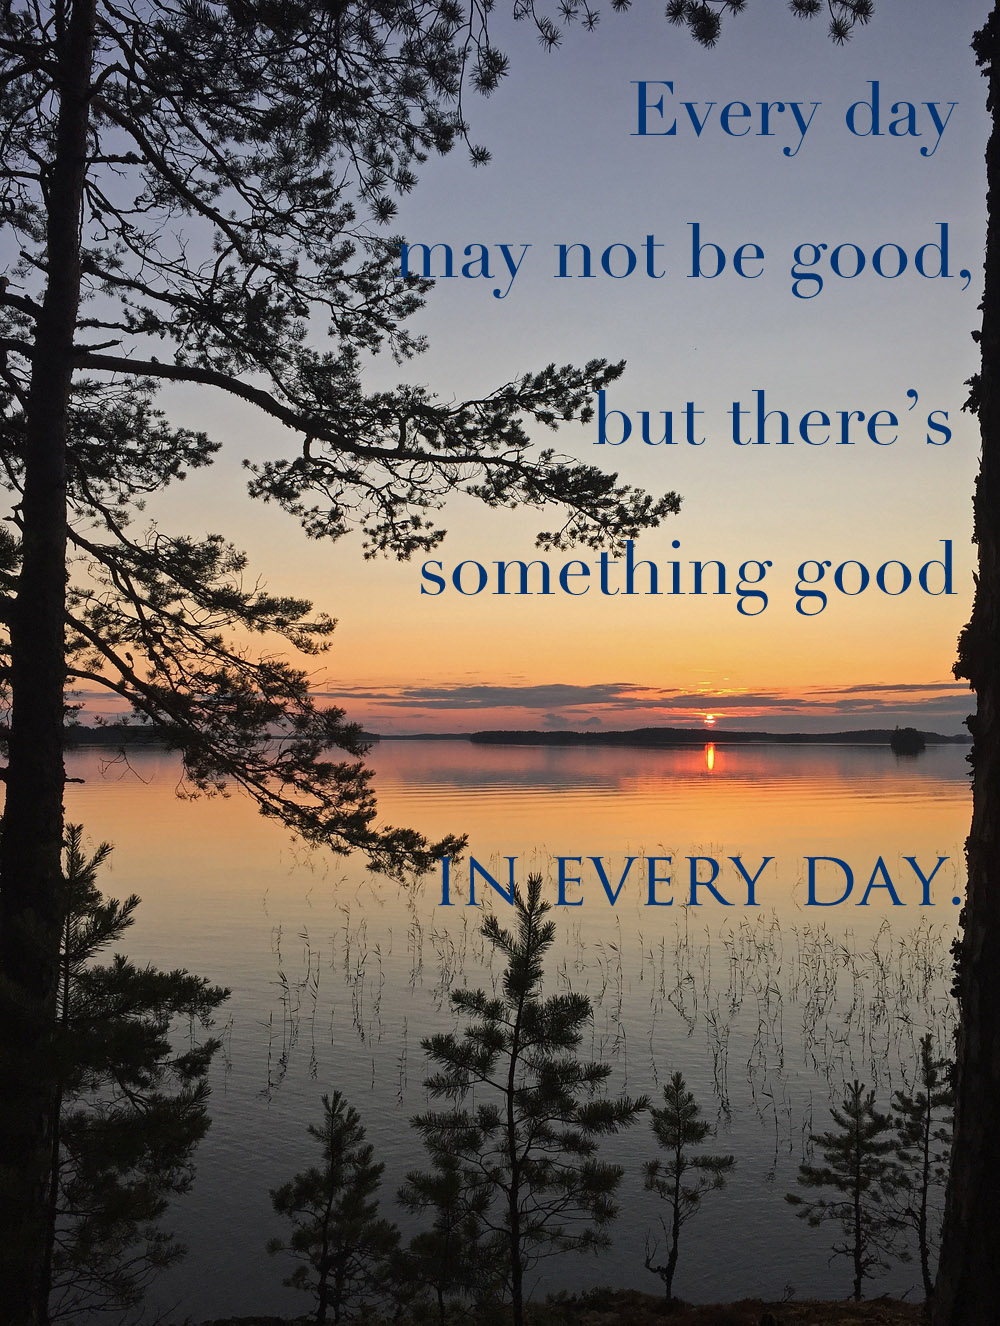 every-day-may-not-be-good-but-there-is-something-in-every-day-quote